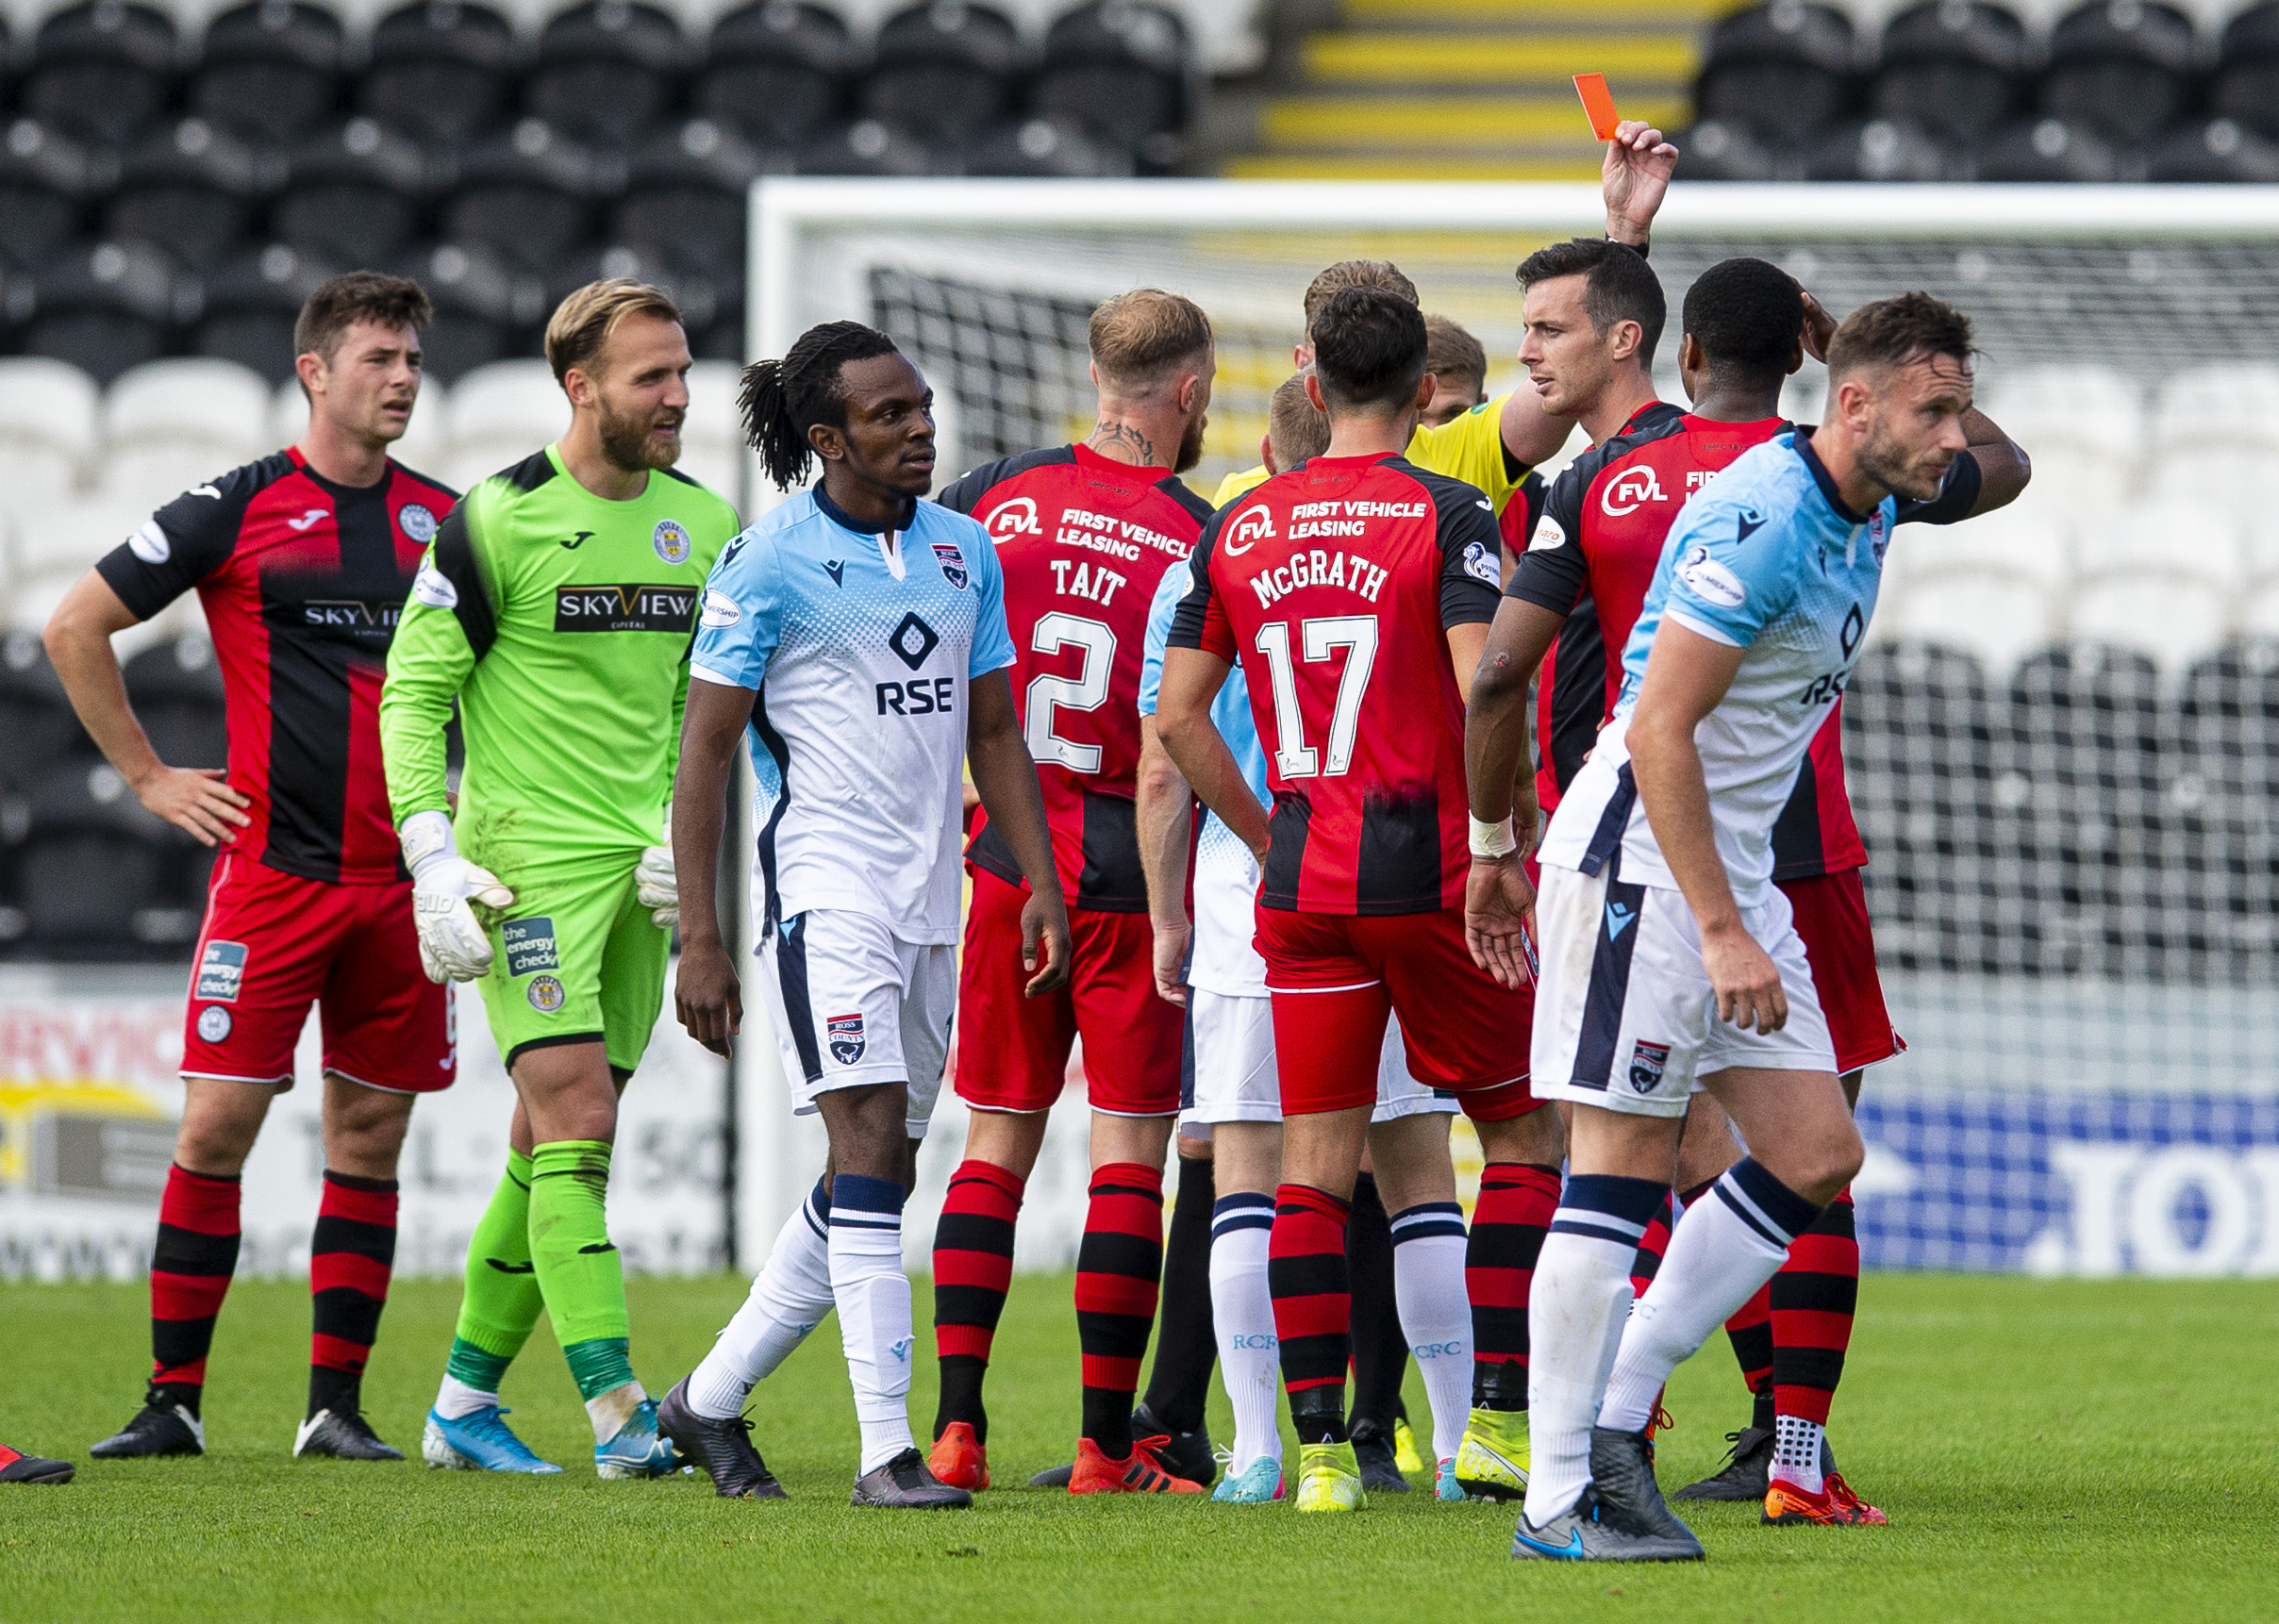 St Mirren's Joe Shaugnessy  (R) is shown red after a challenge on Ross County's Ross Stewart during the Scottish Premiership match between St Mirren and Ross County at St Mirren Park.